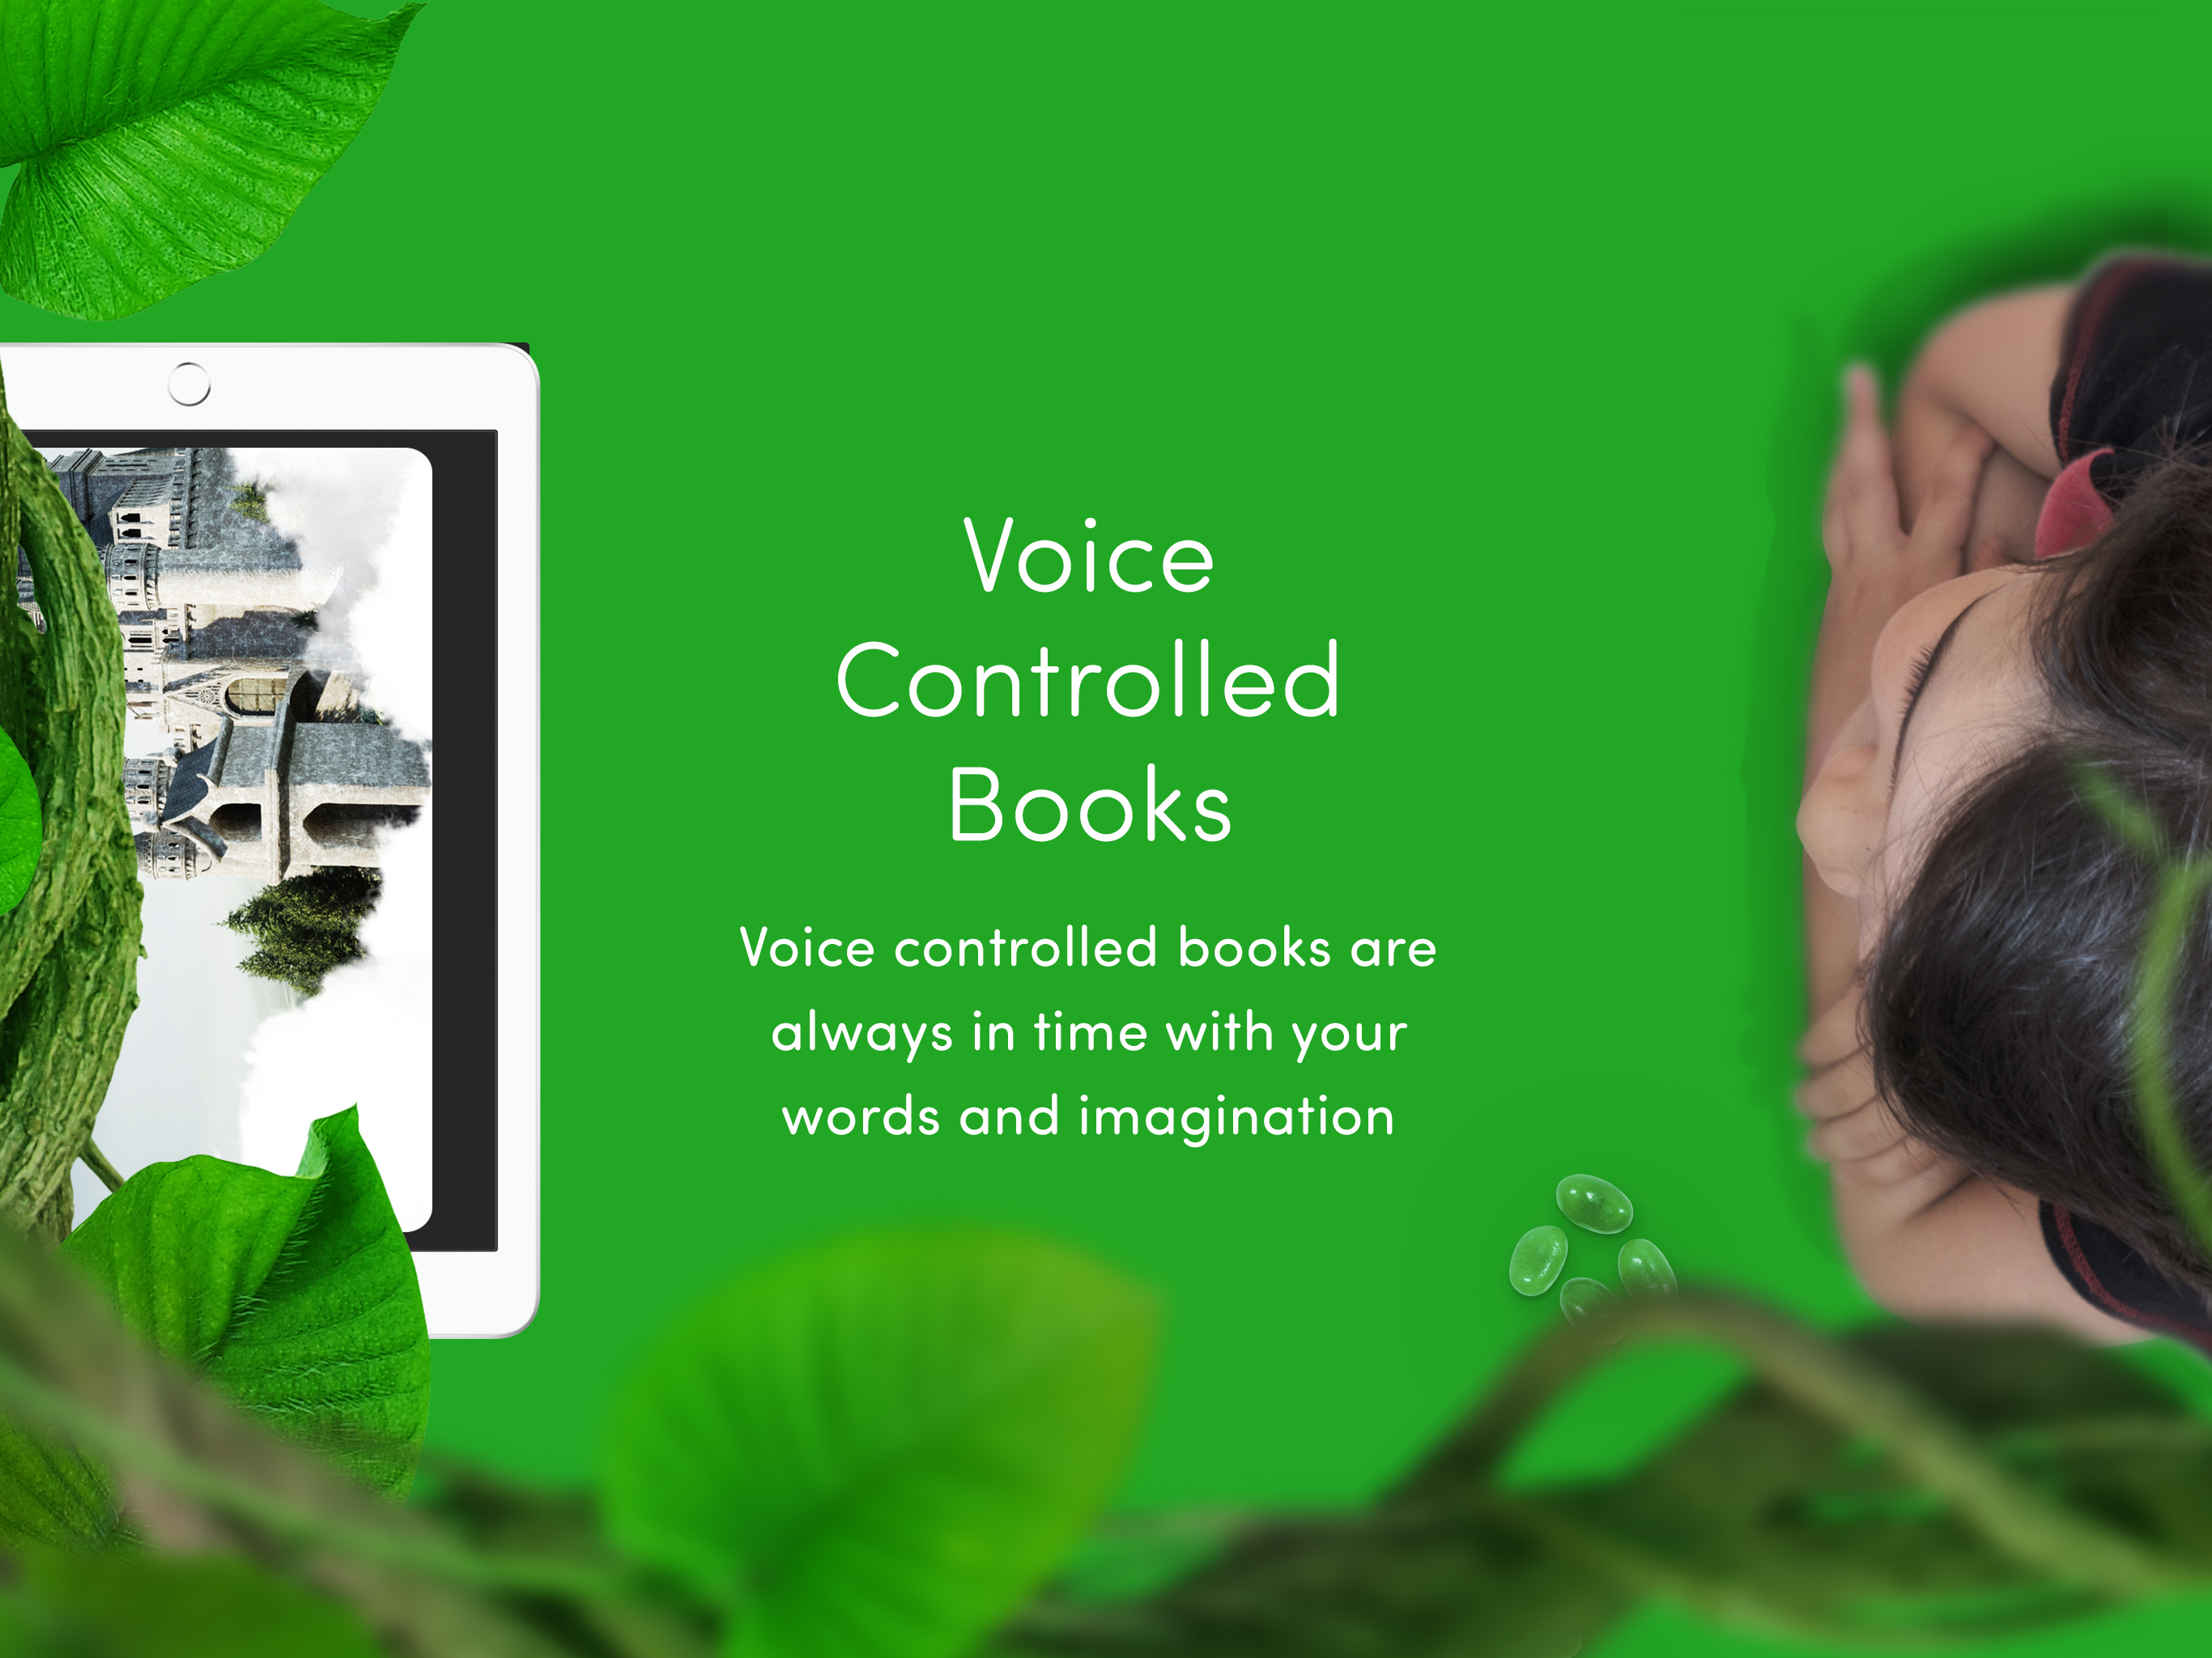 Using voice technology to create immersive reading experiences